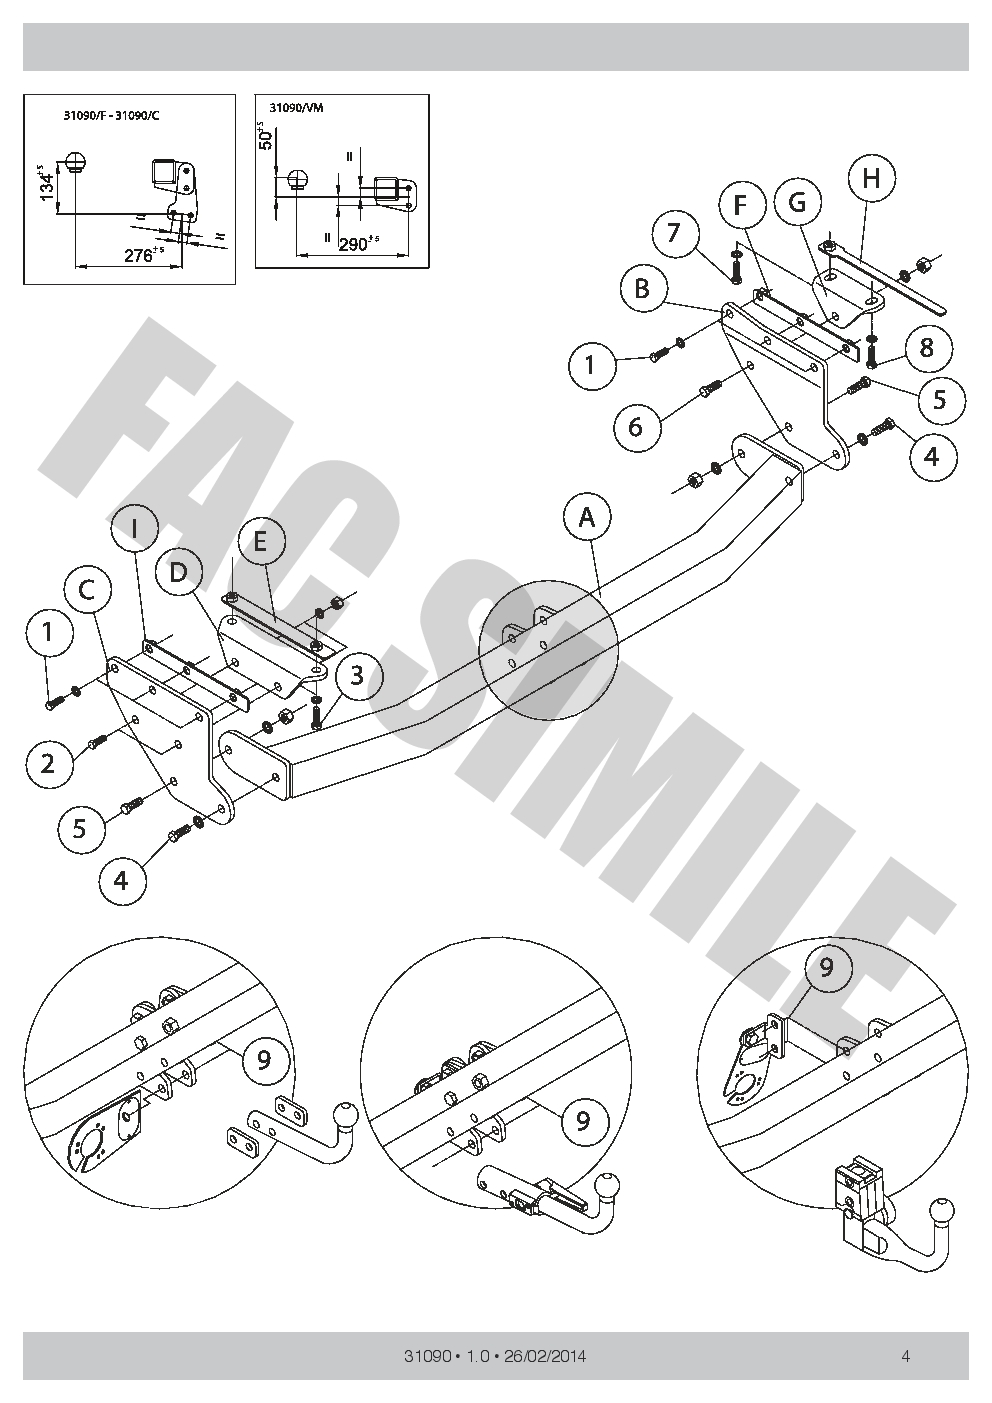 Vertical Detachable Towbar 13p C2 Wiring for Renault